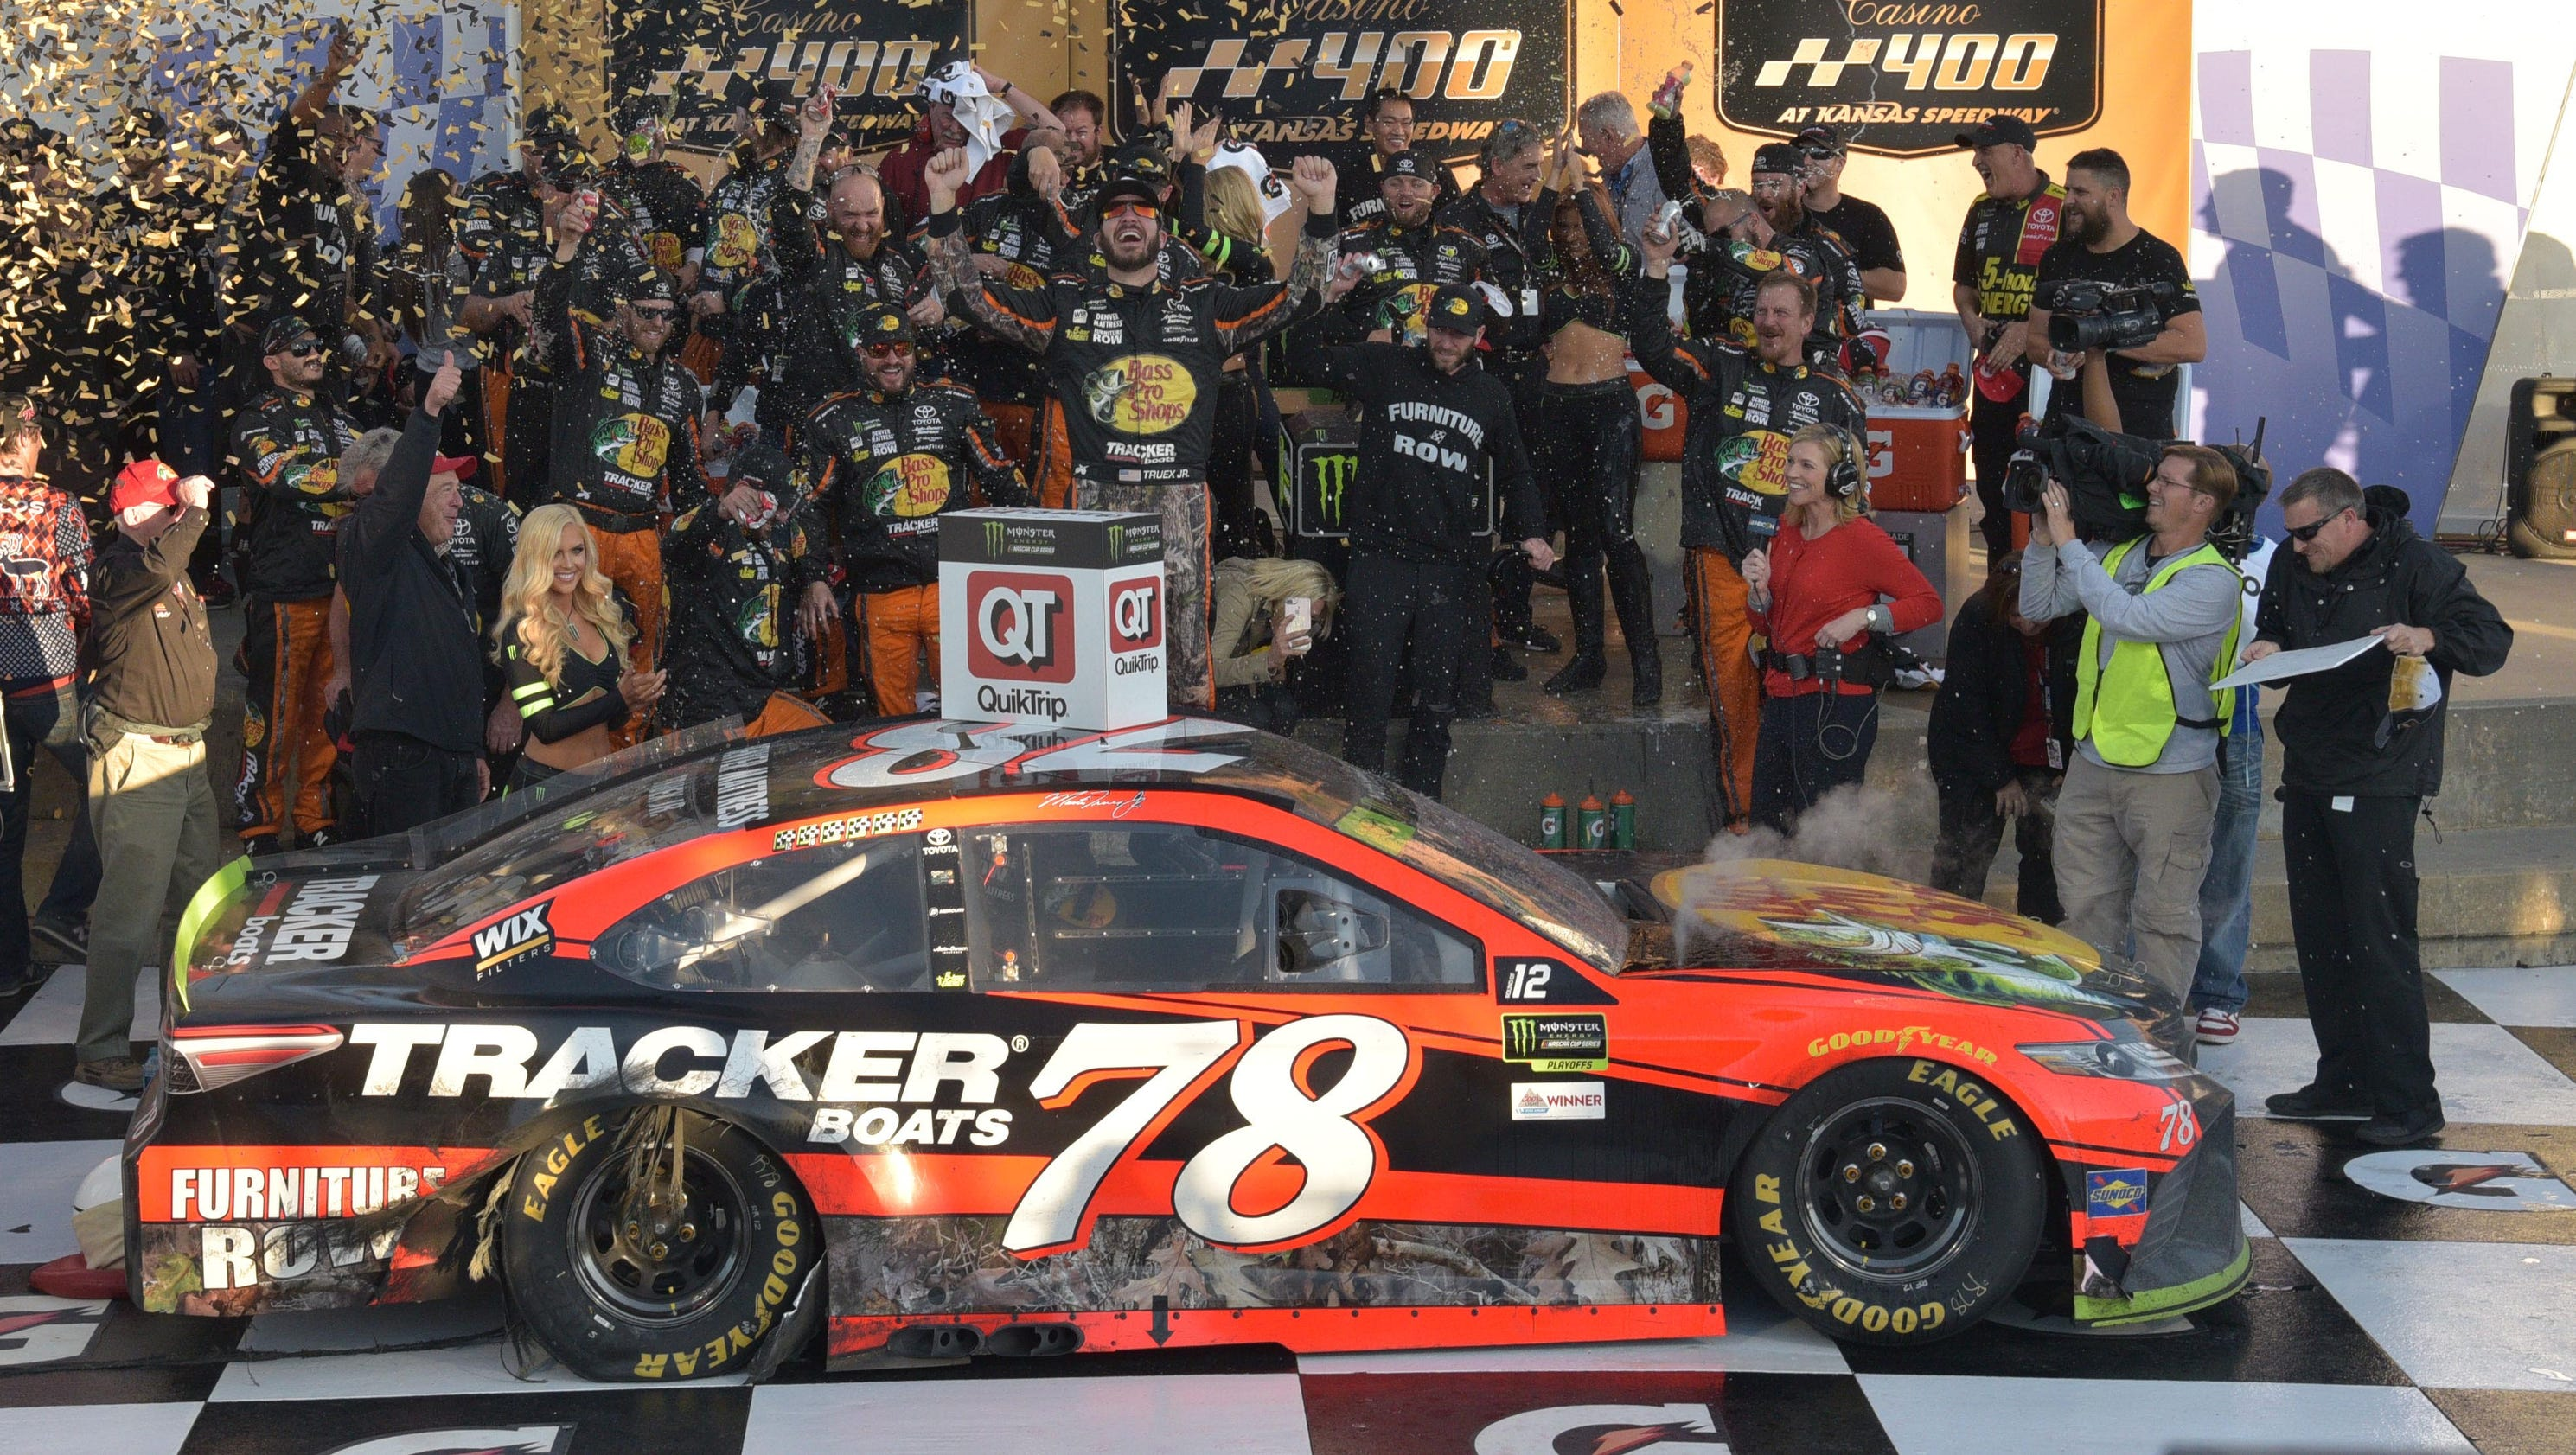 Racing Calendar May : What time does the nascar cup race at kansas start